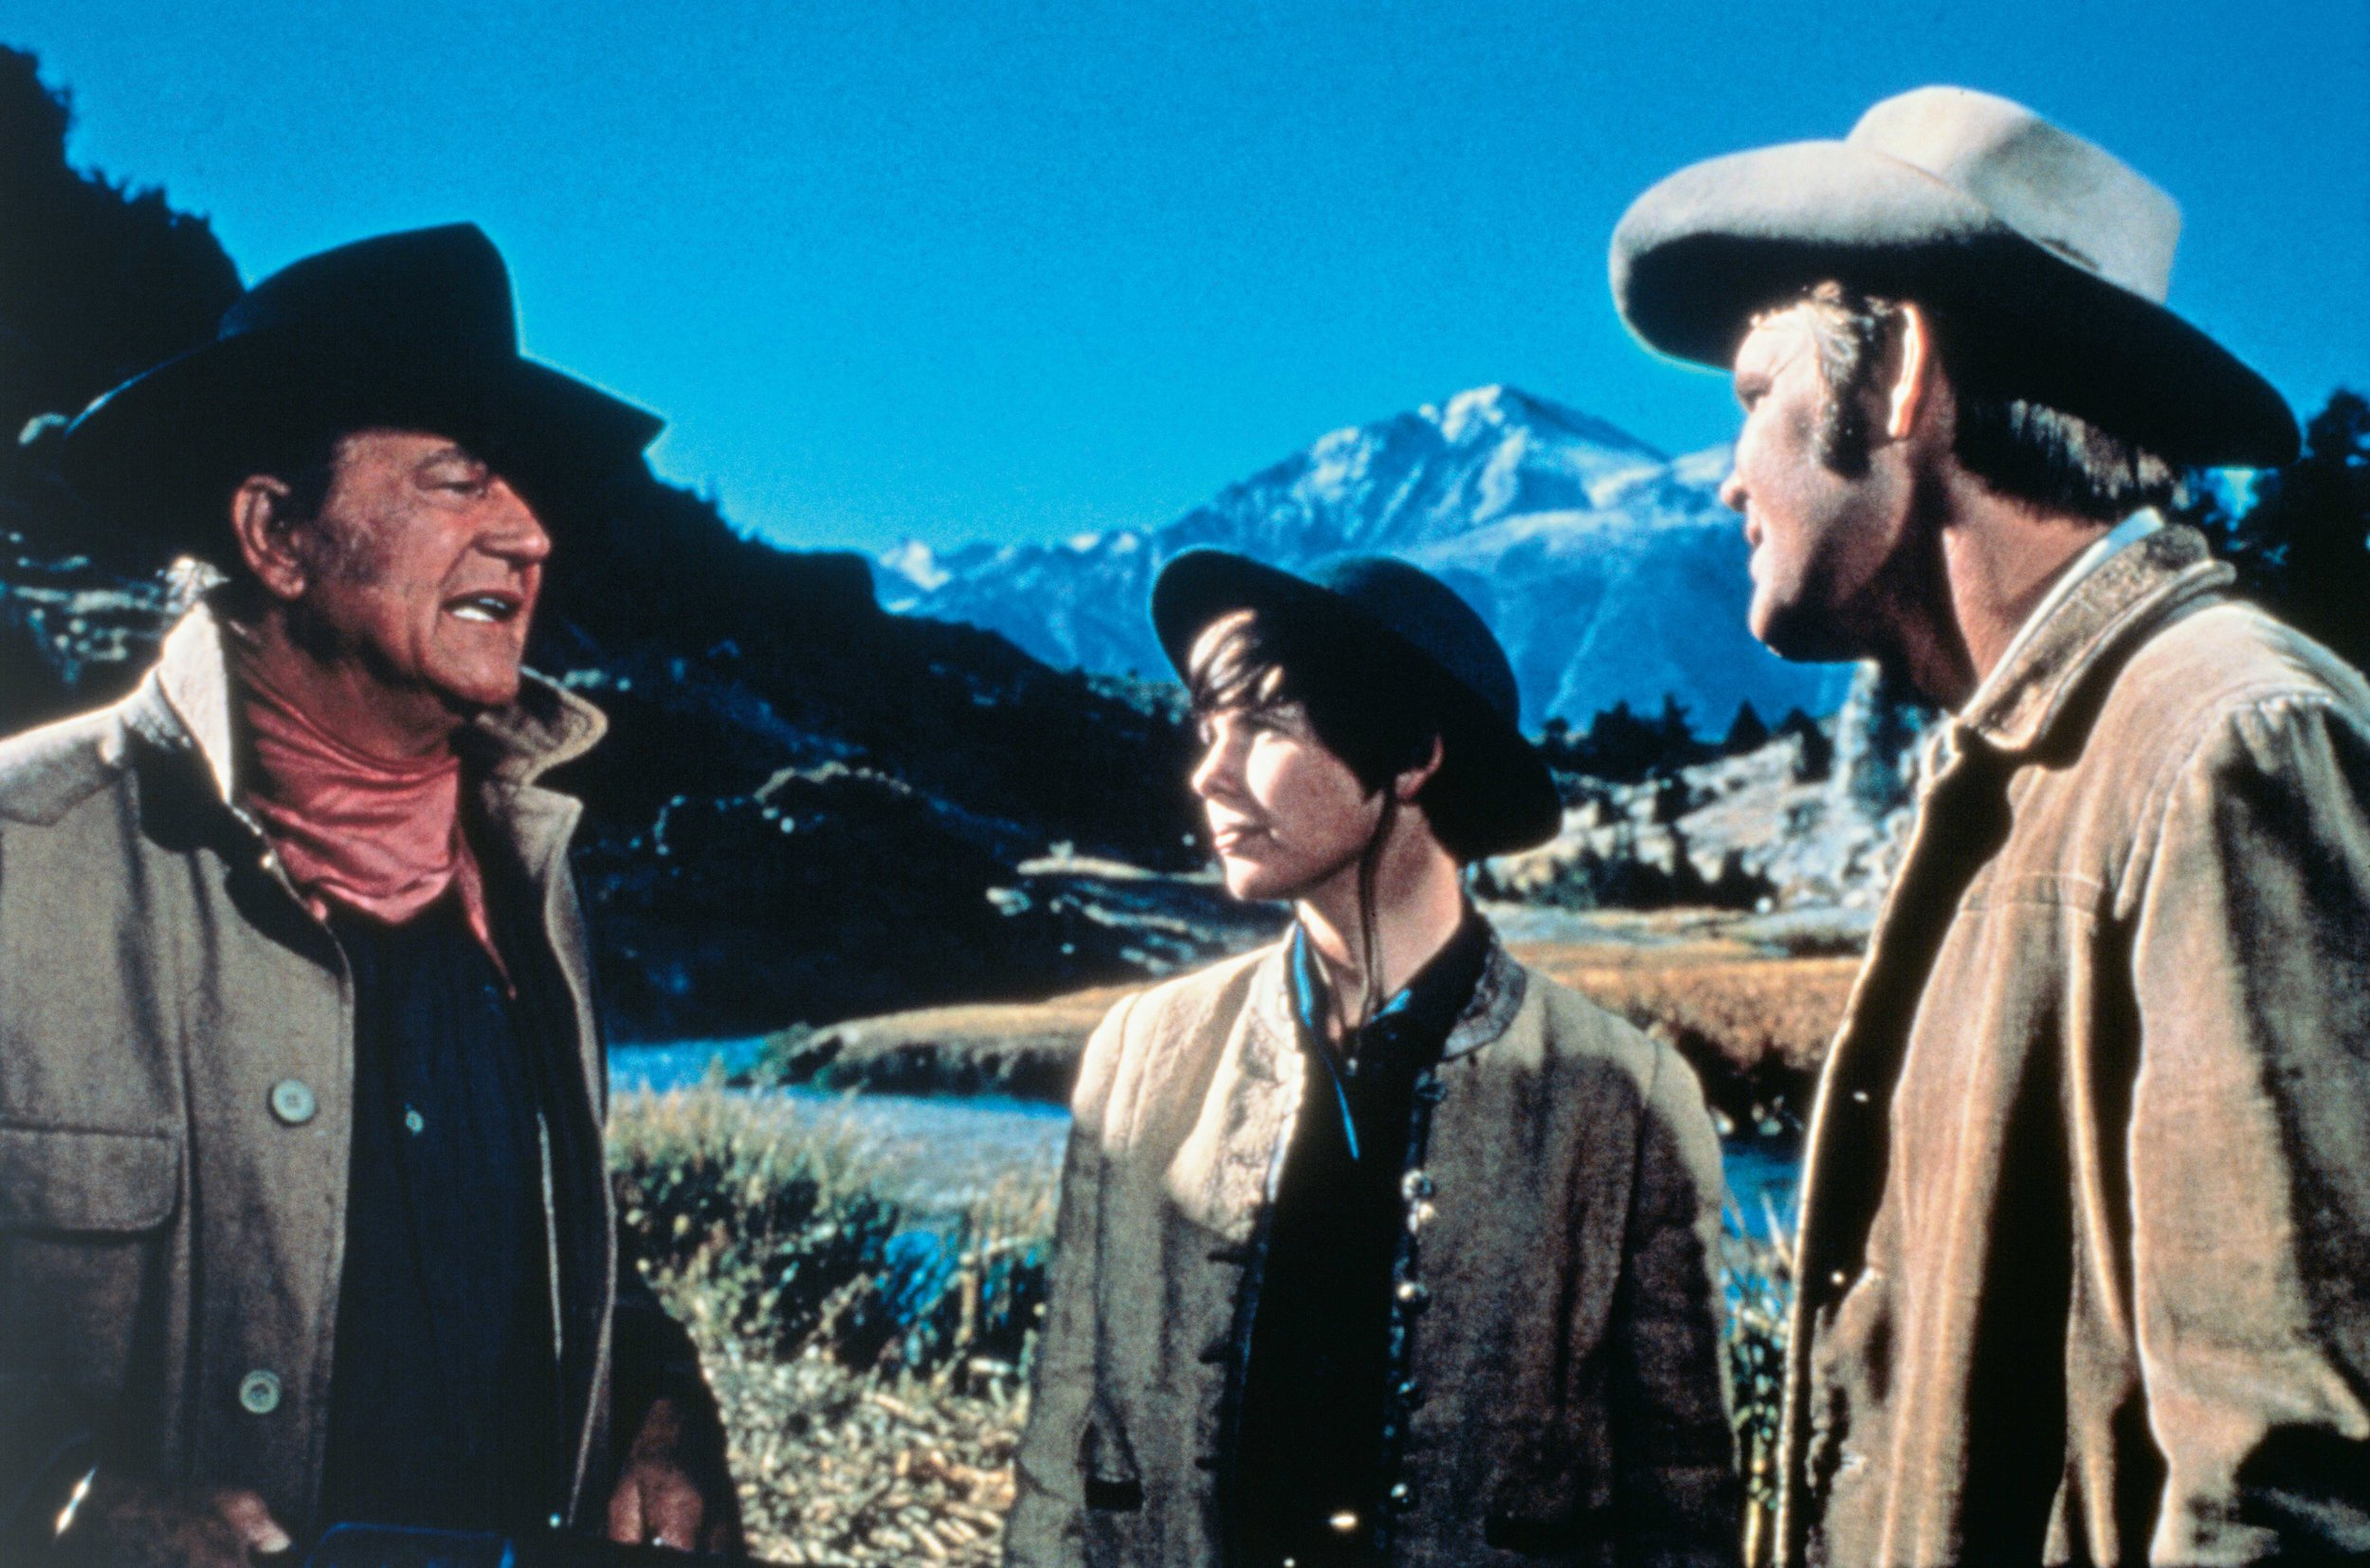 John Wayne, Kim Darby and Glen Campbell. ©2019 Paramount Pictures. All Rights Reserved.